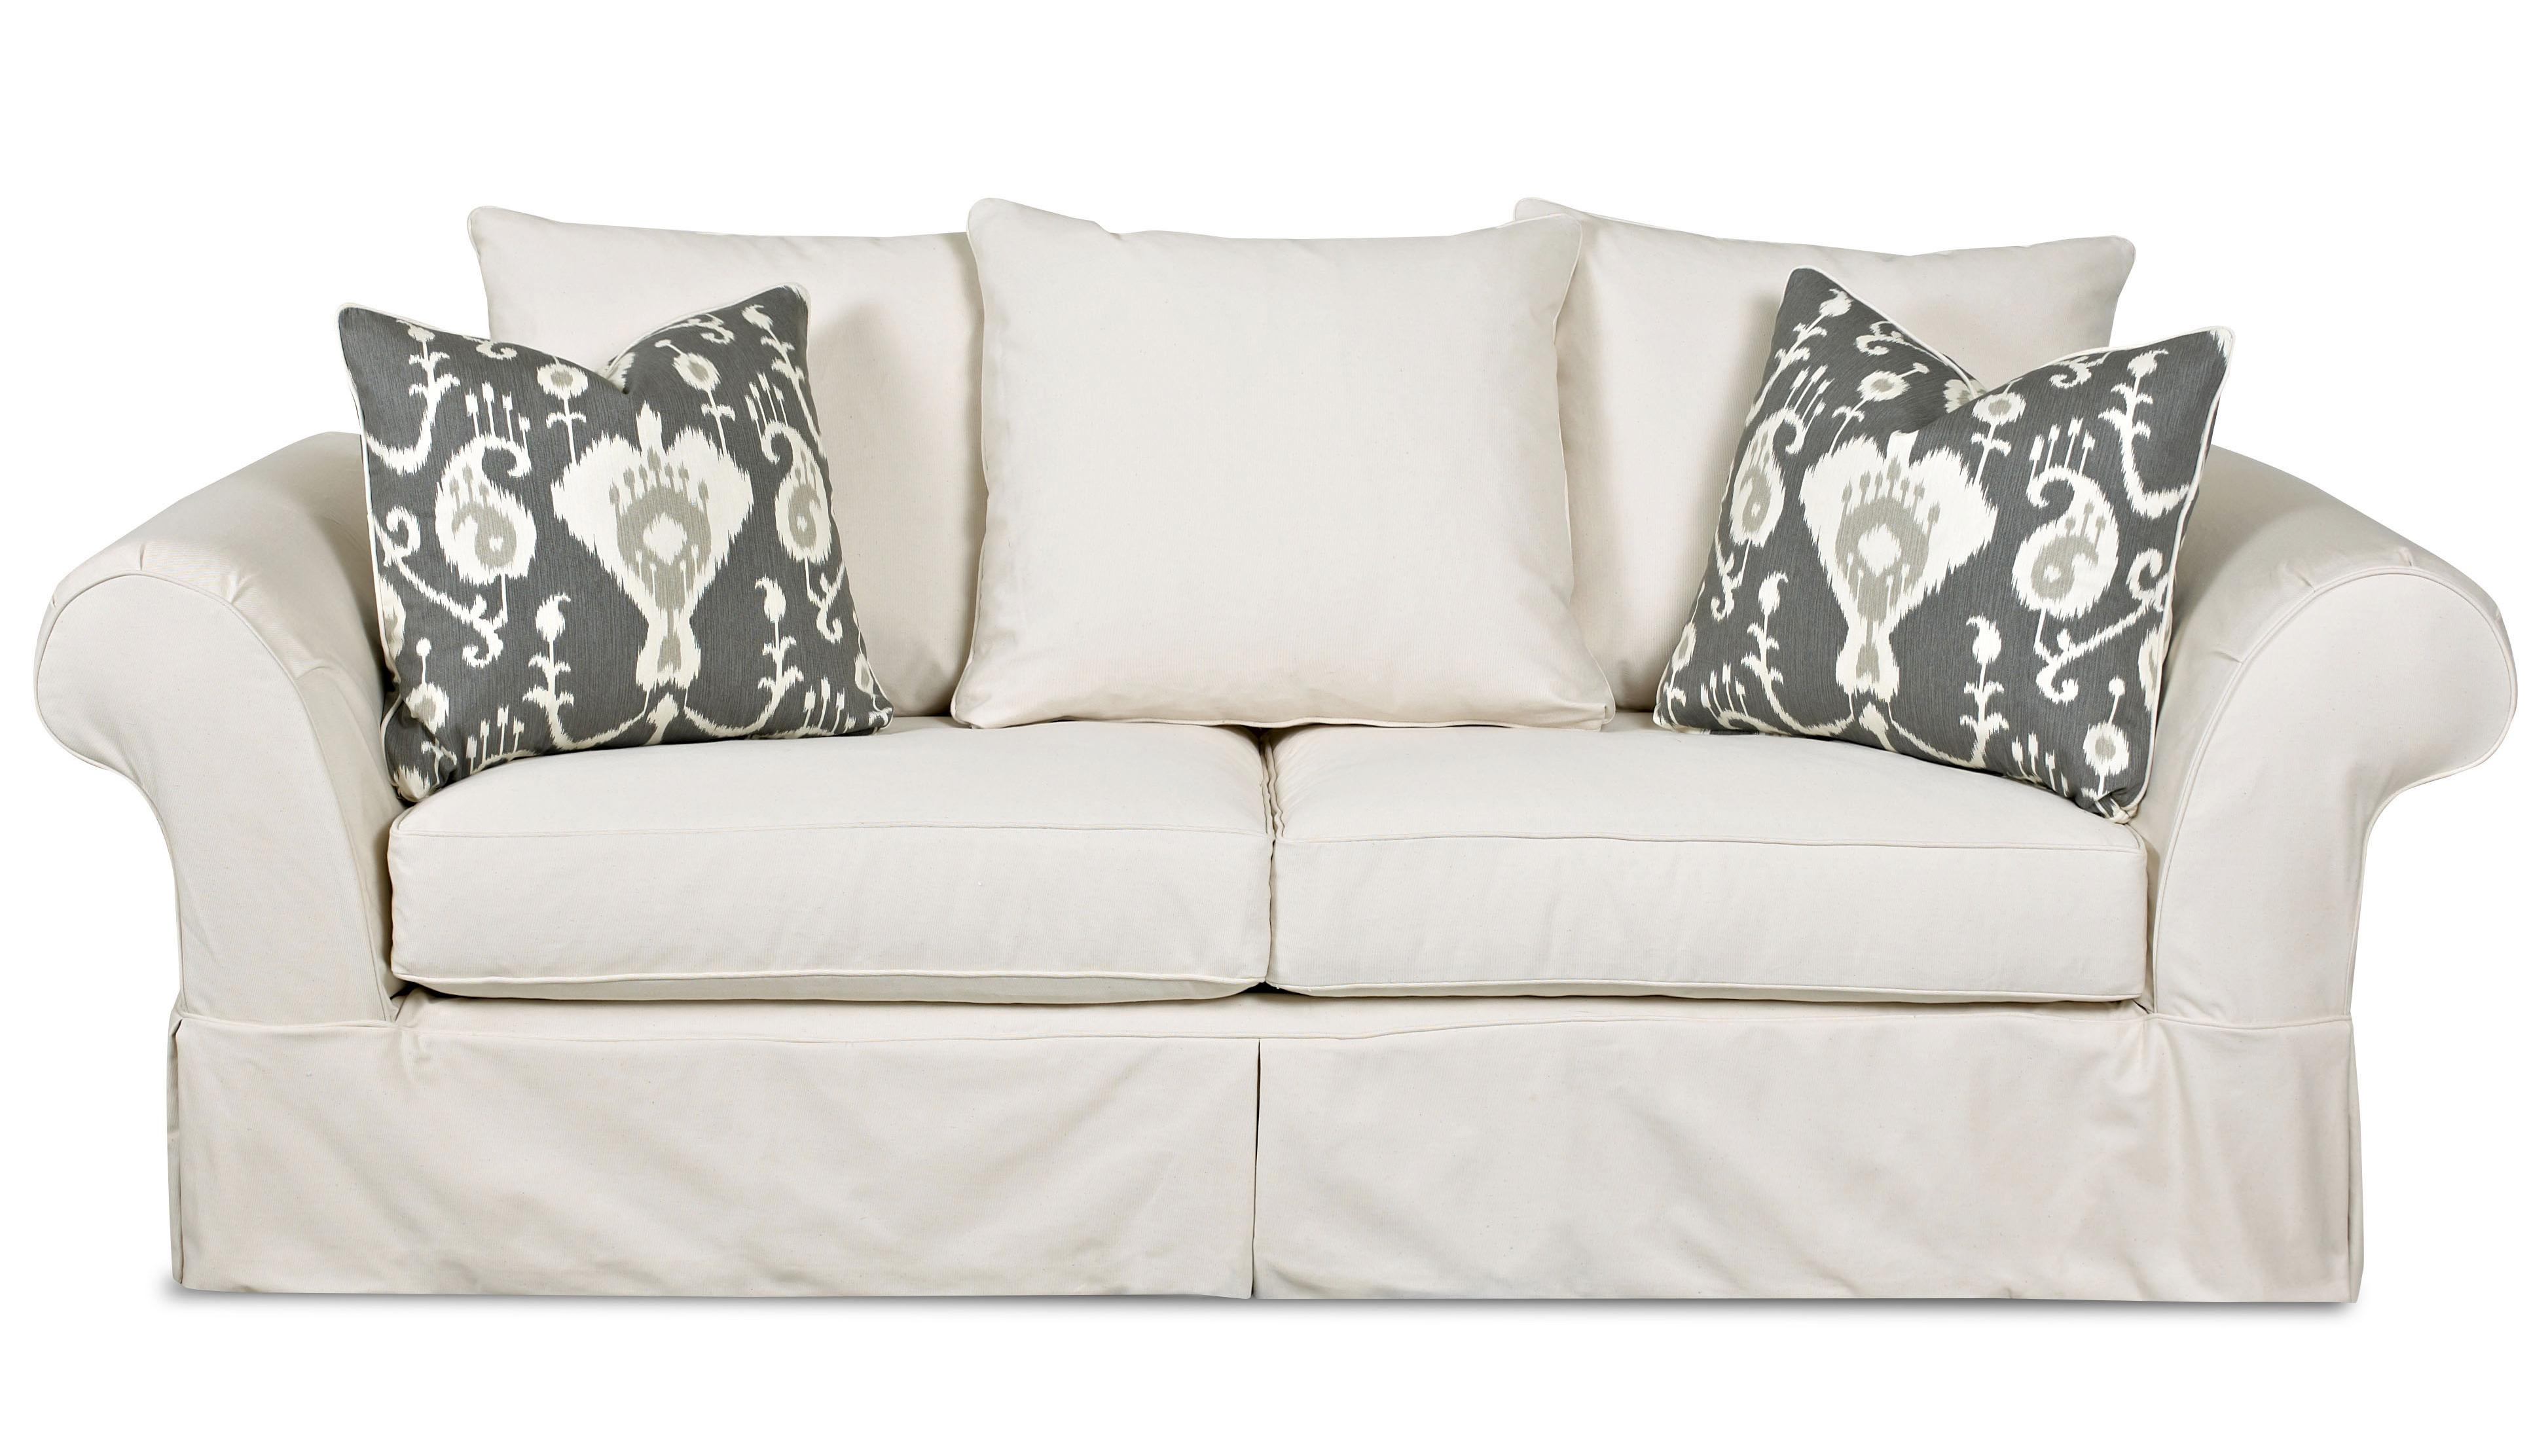 Charleston Sofa with Scatterback Pillows by Klaussner at Northeast Factory Direct